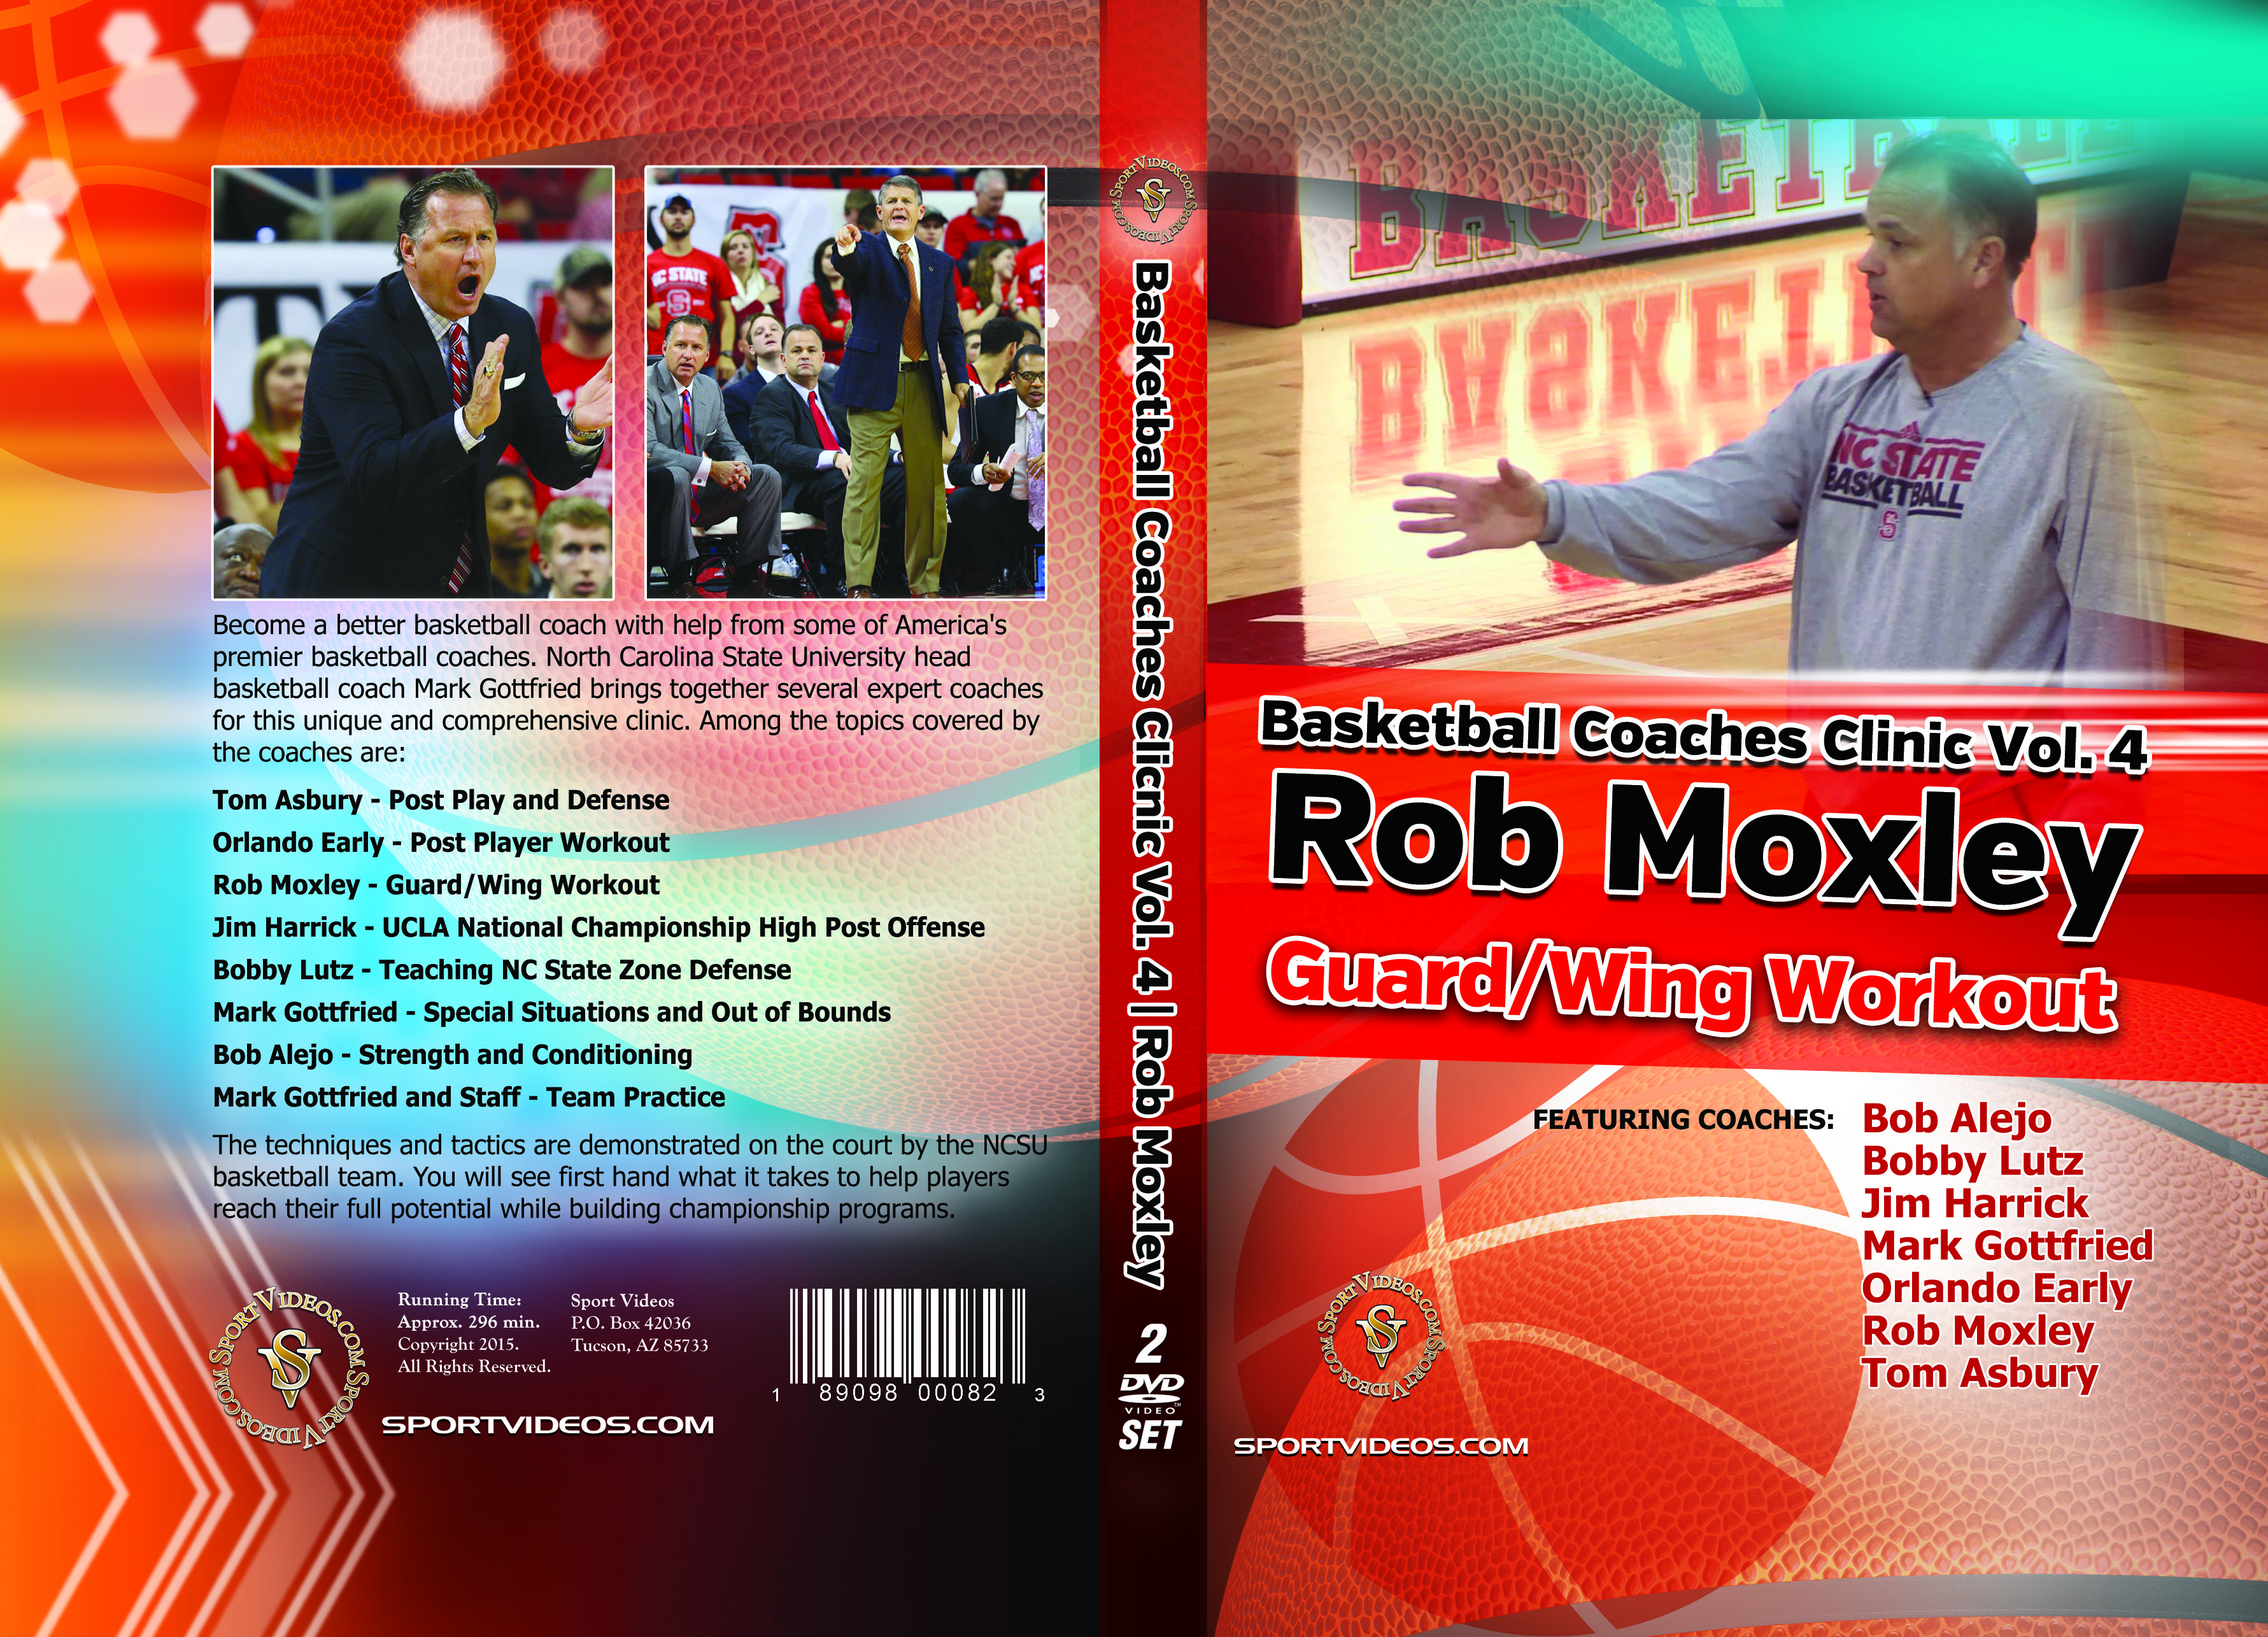 Basketball  Coaches clinic Vol. 4 Guard/Wing Workout - Download